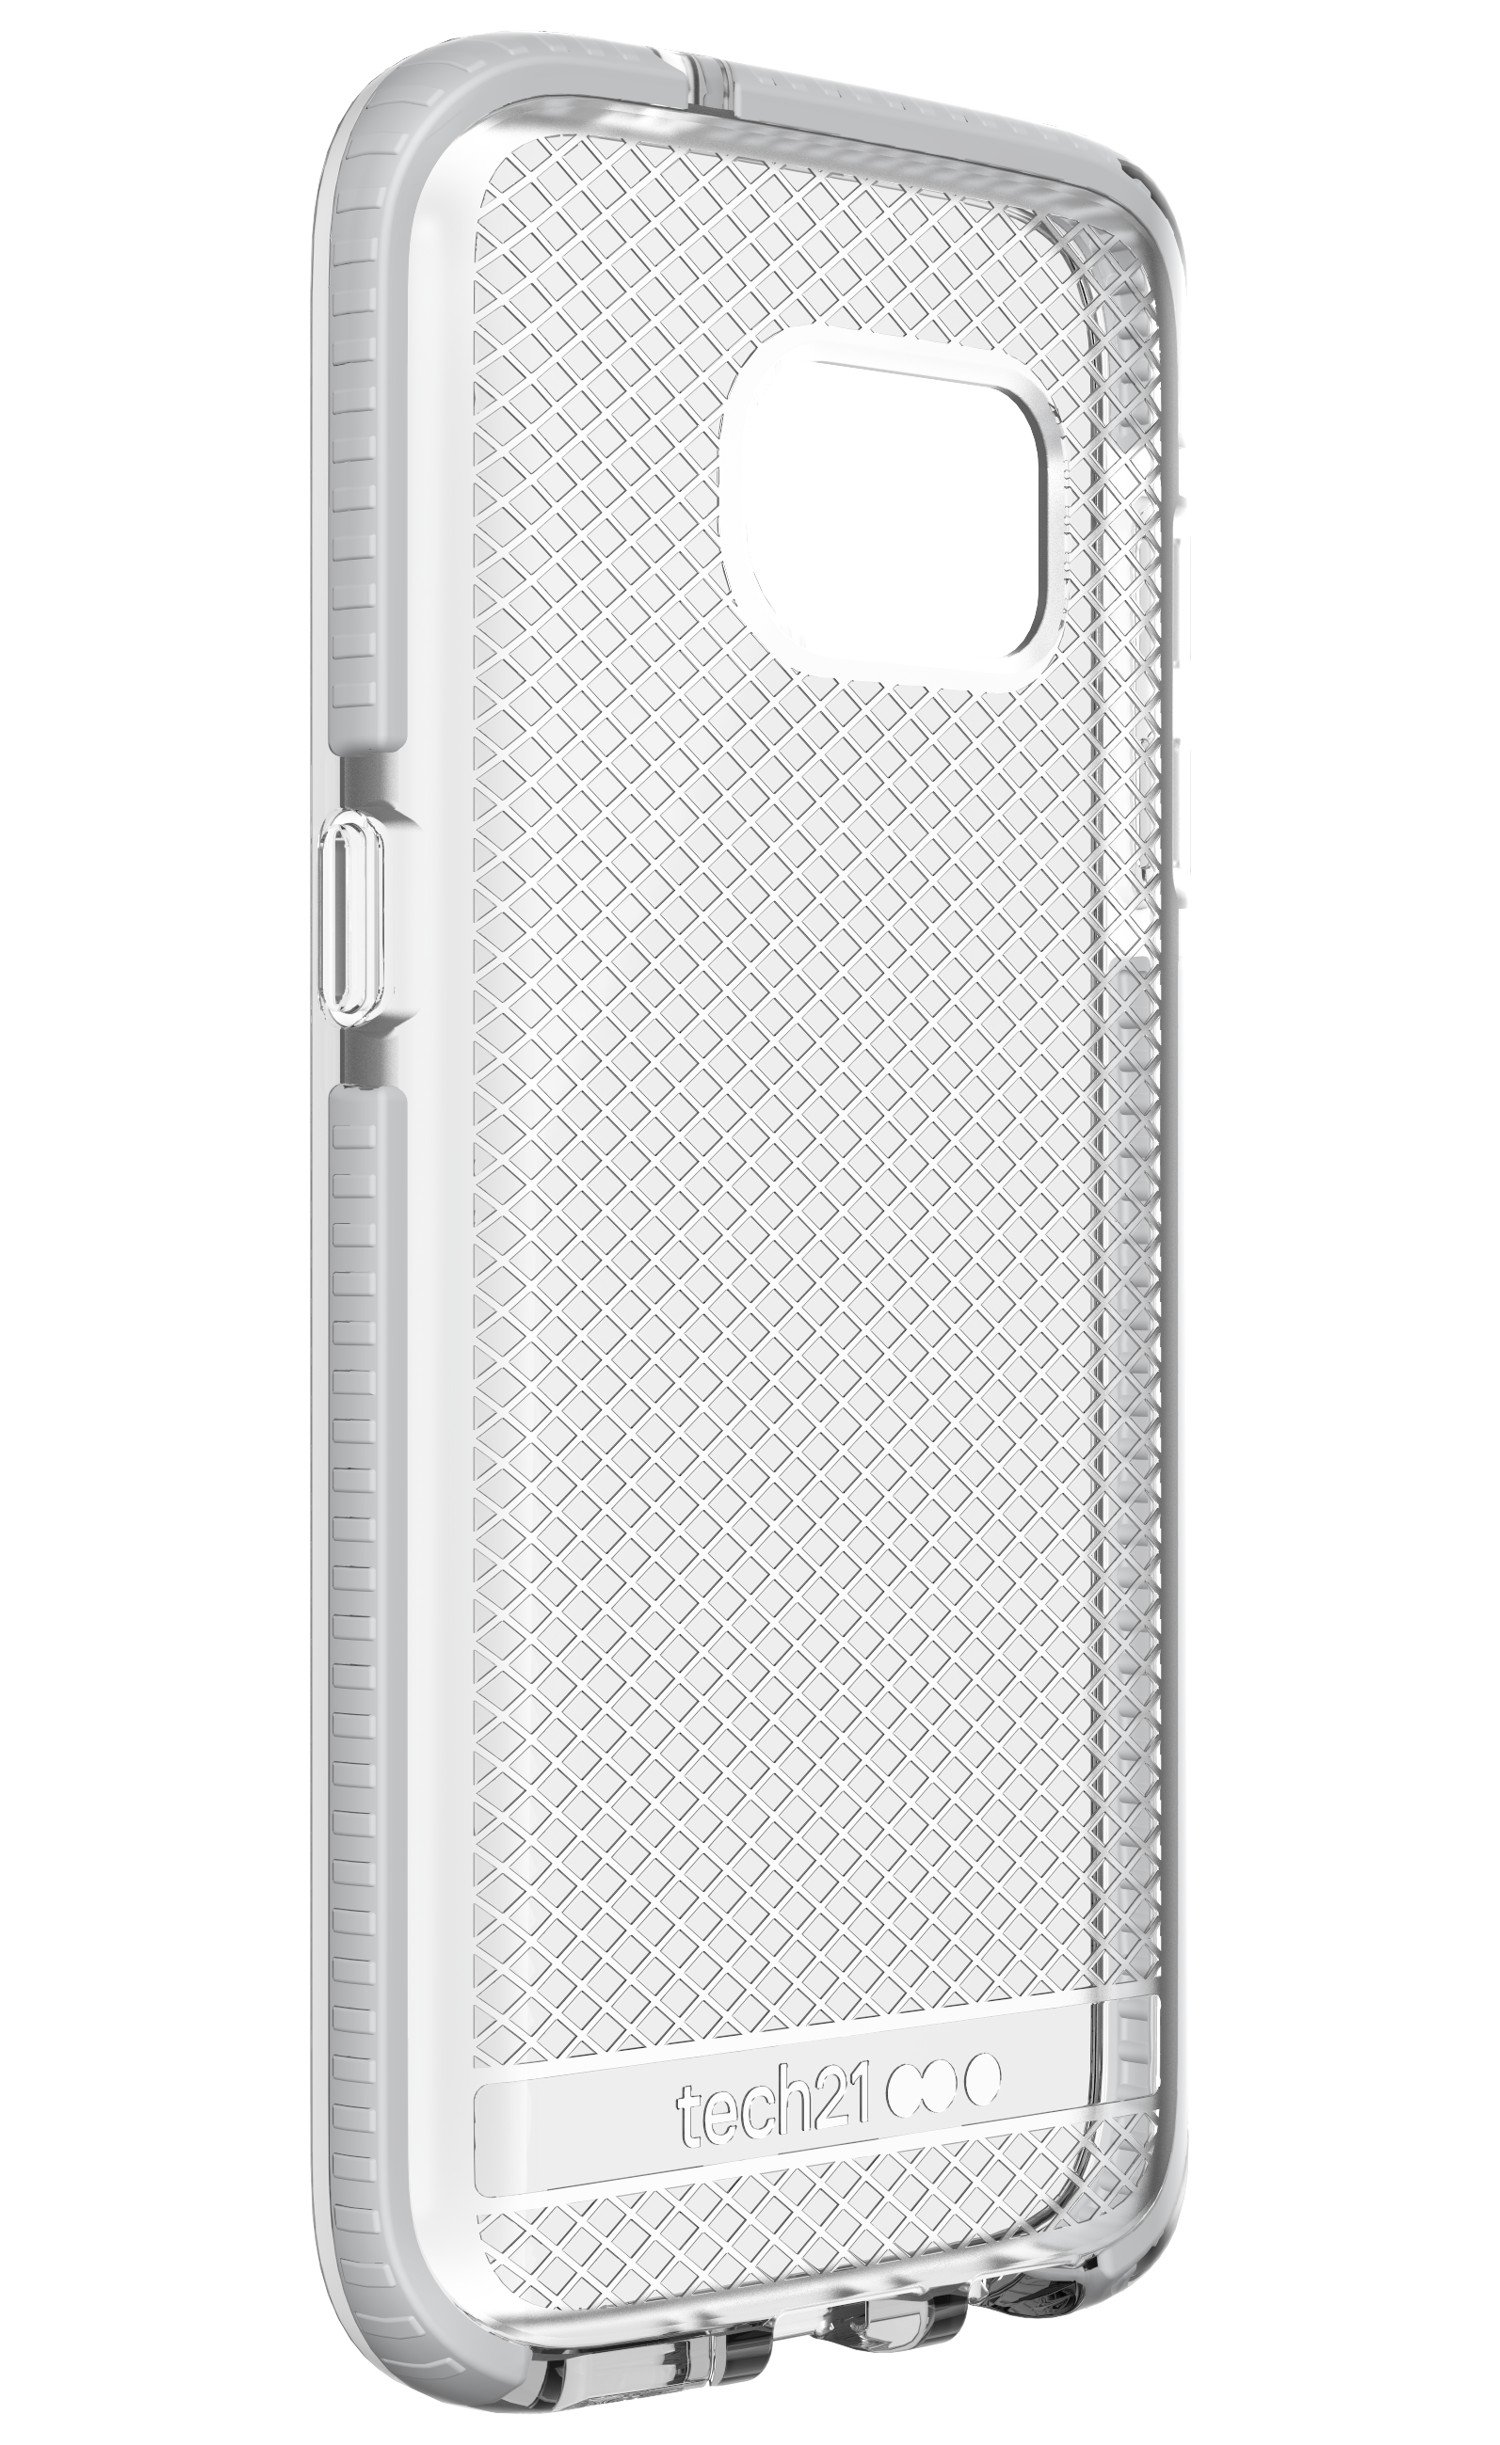 Tech21 Evo Check Case for Galaxy S7 - Clear/White by tech21 (Image #8)